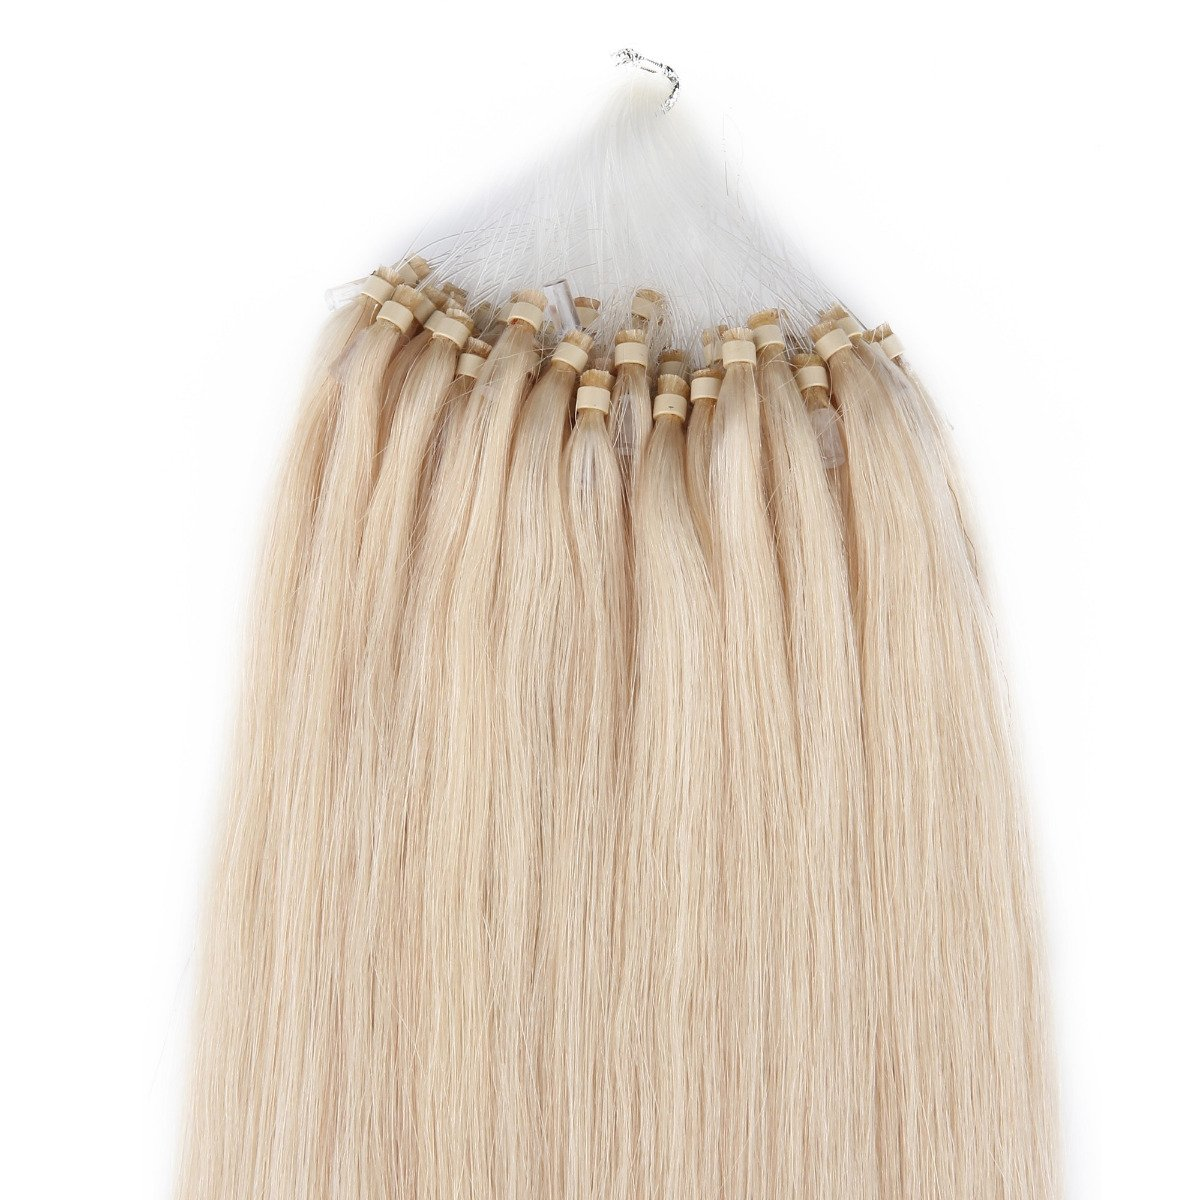 Amazon Beauty7 18 20 22 24 Loop Micro Ring Beads Tipped